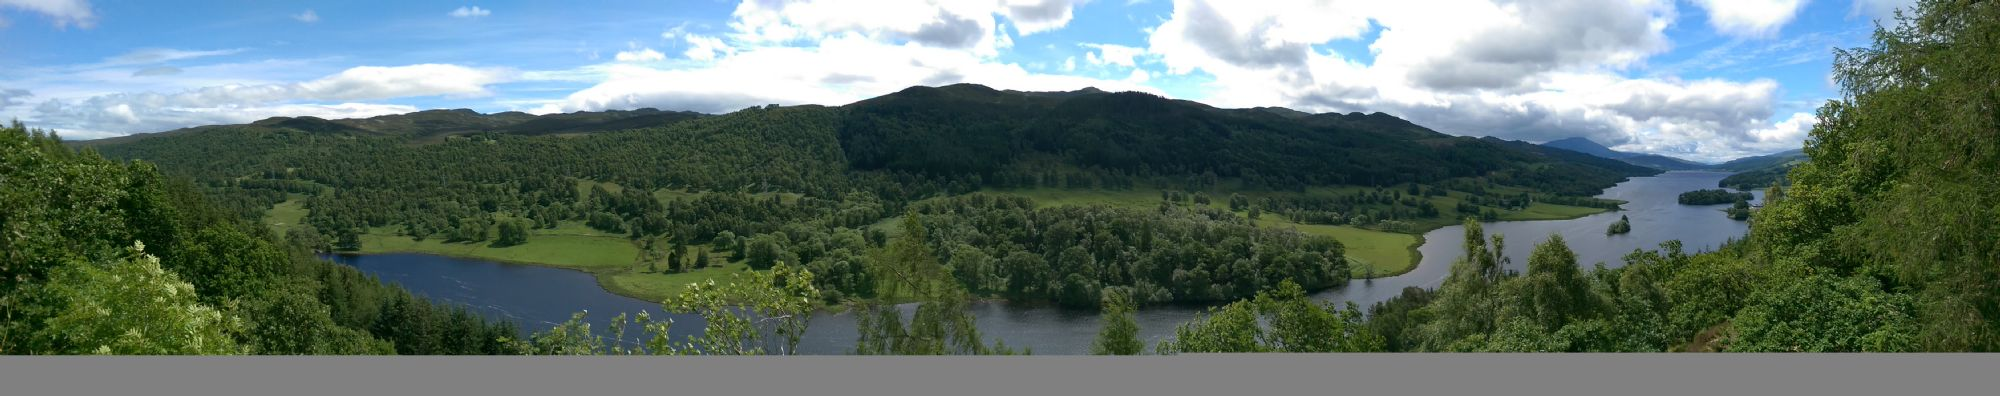 Panorama of the Queens view